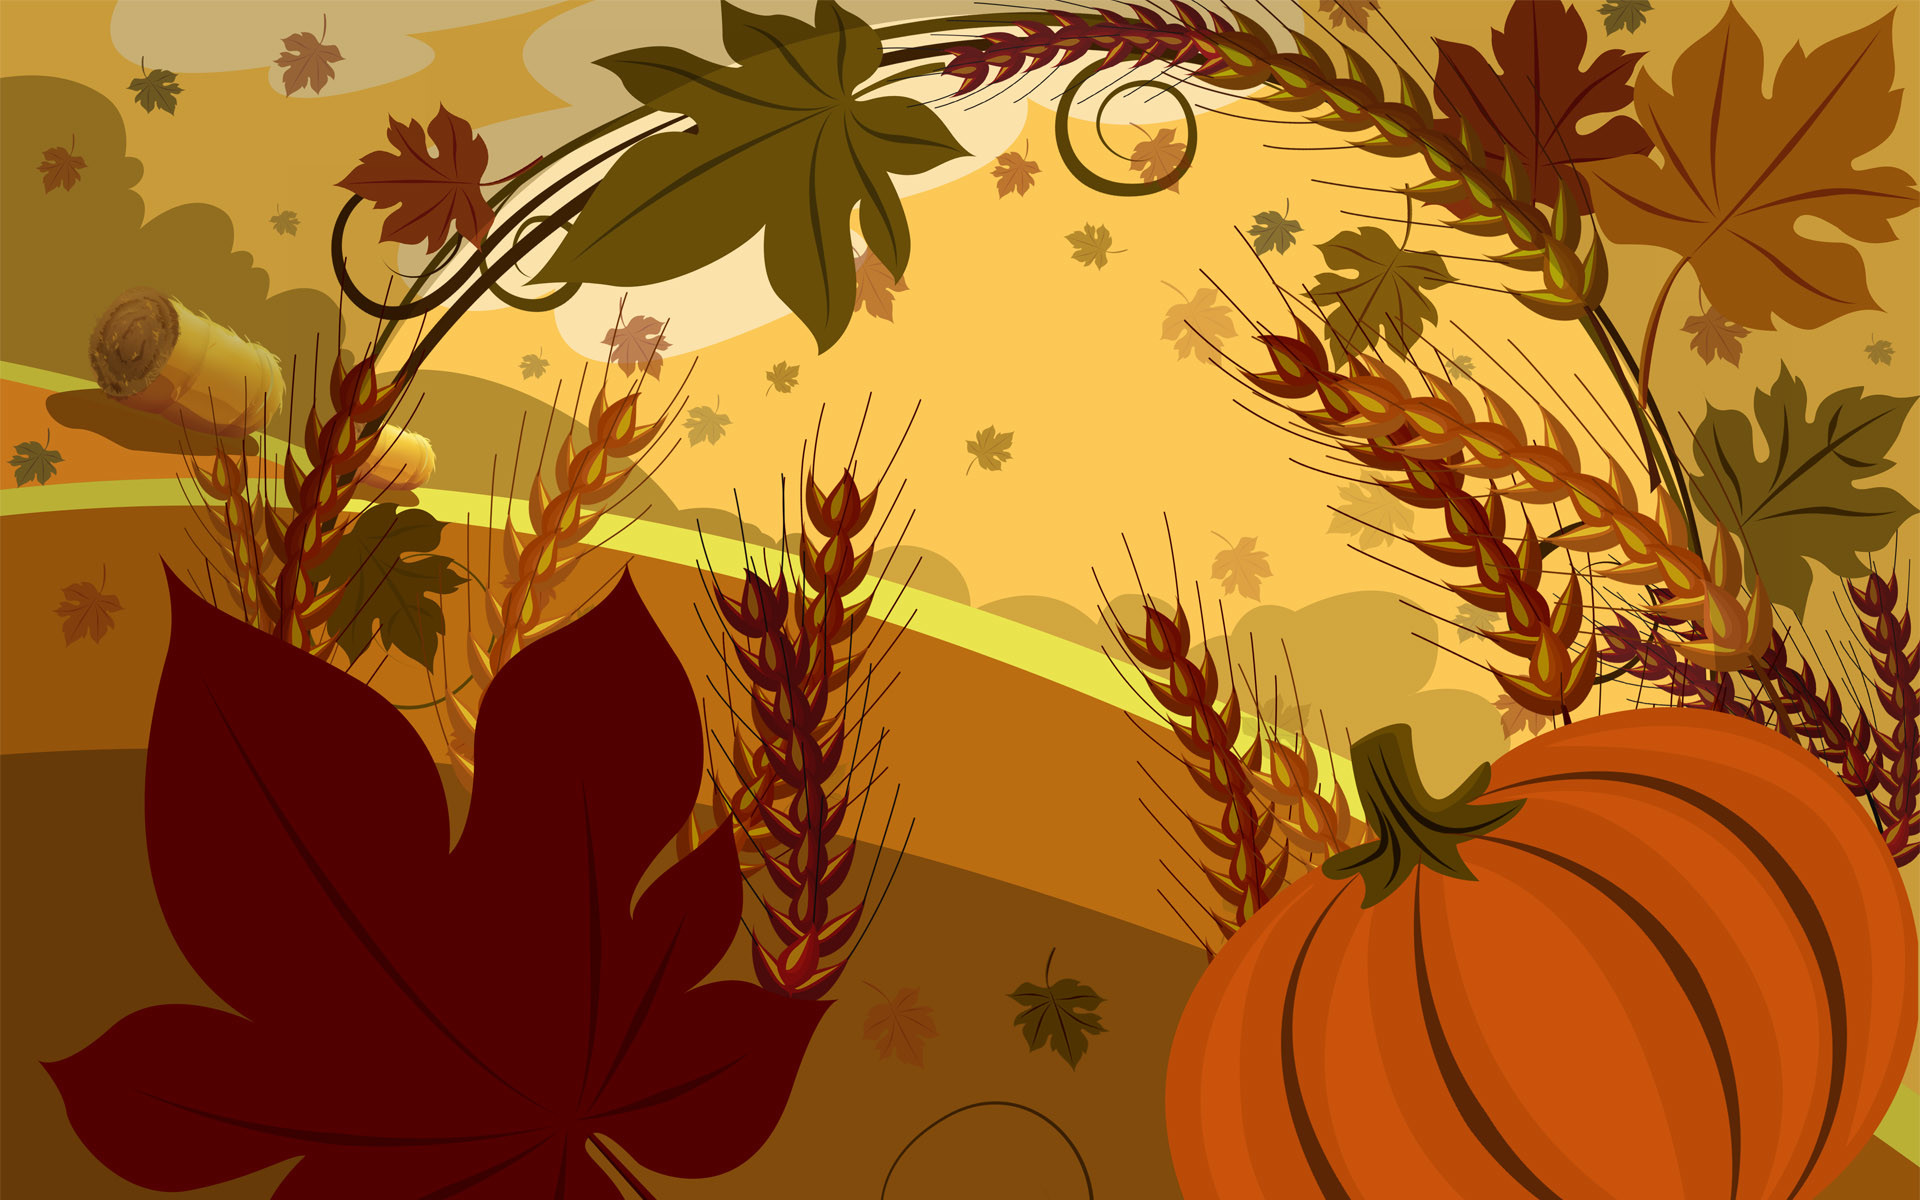 Animated Thanksgiving Desktop Wallpaper 60 images 1920x1200